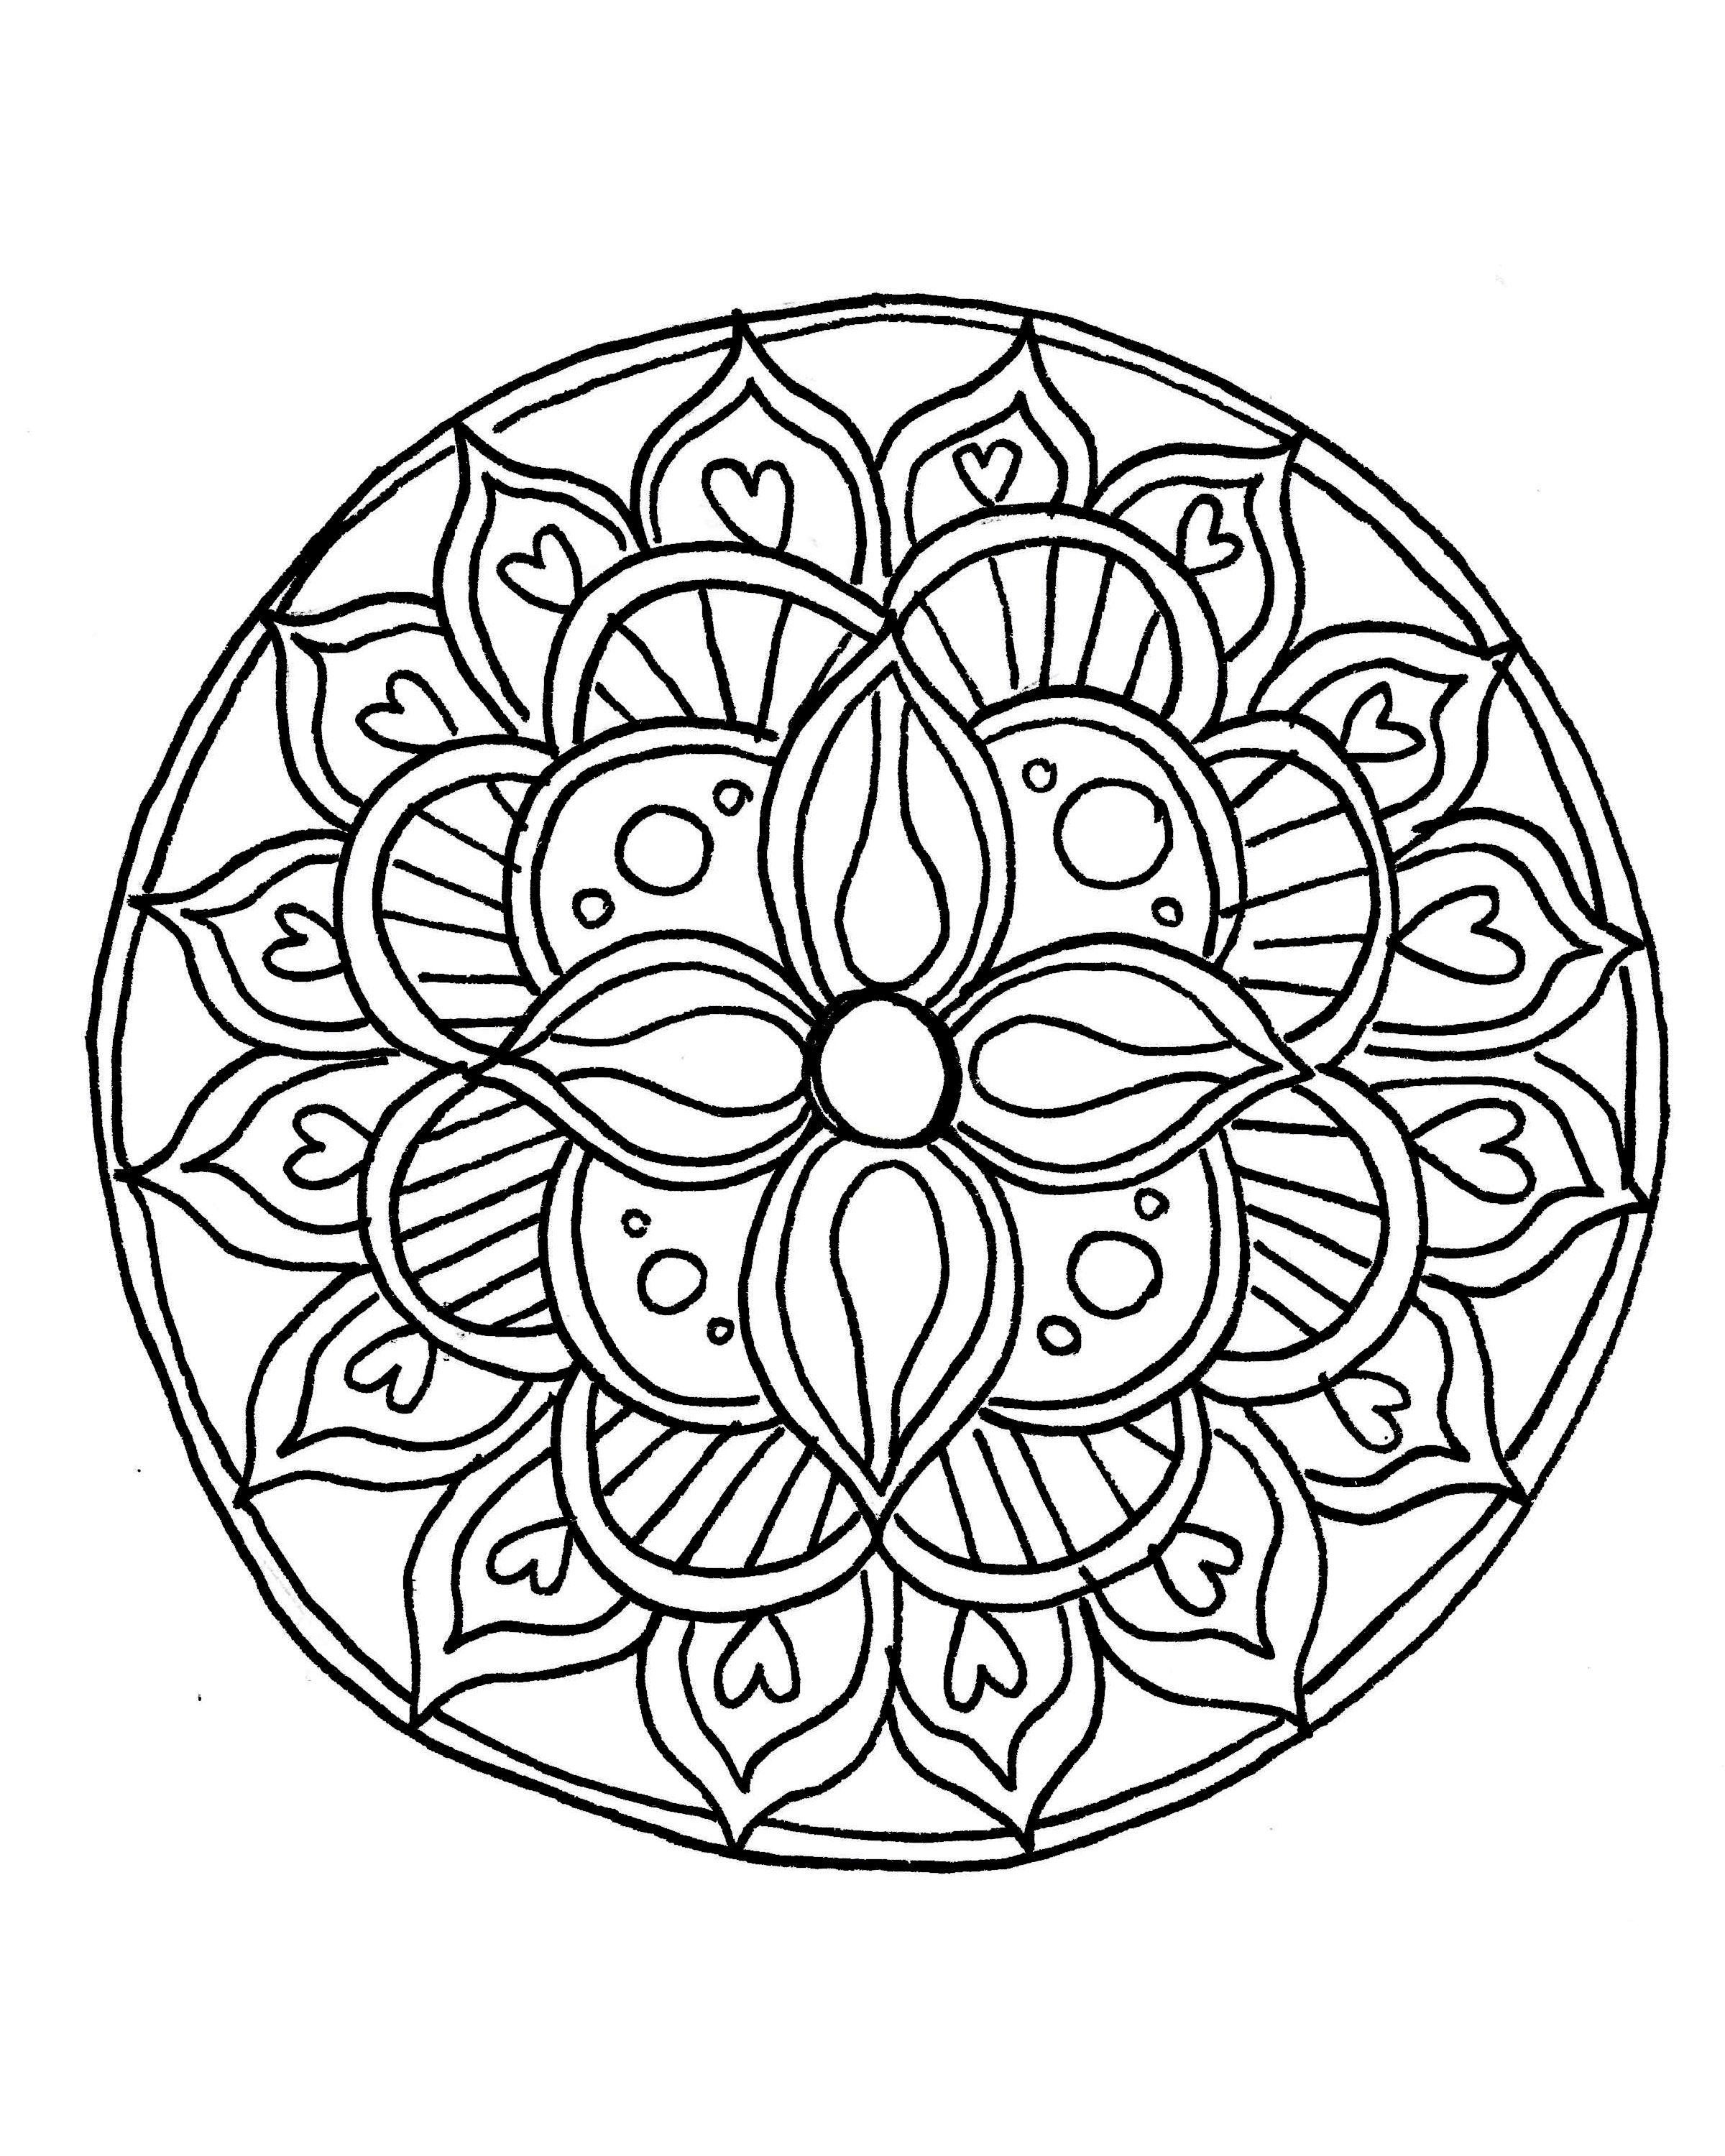 How To Draw A Mandala With Free Coloring Pages Mandala Coloring Pages Mandala Coloring Mandala Coloring Books